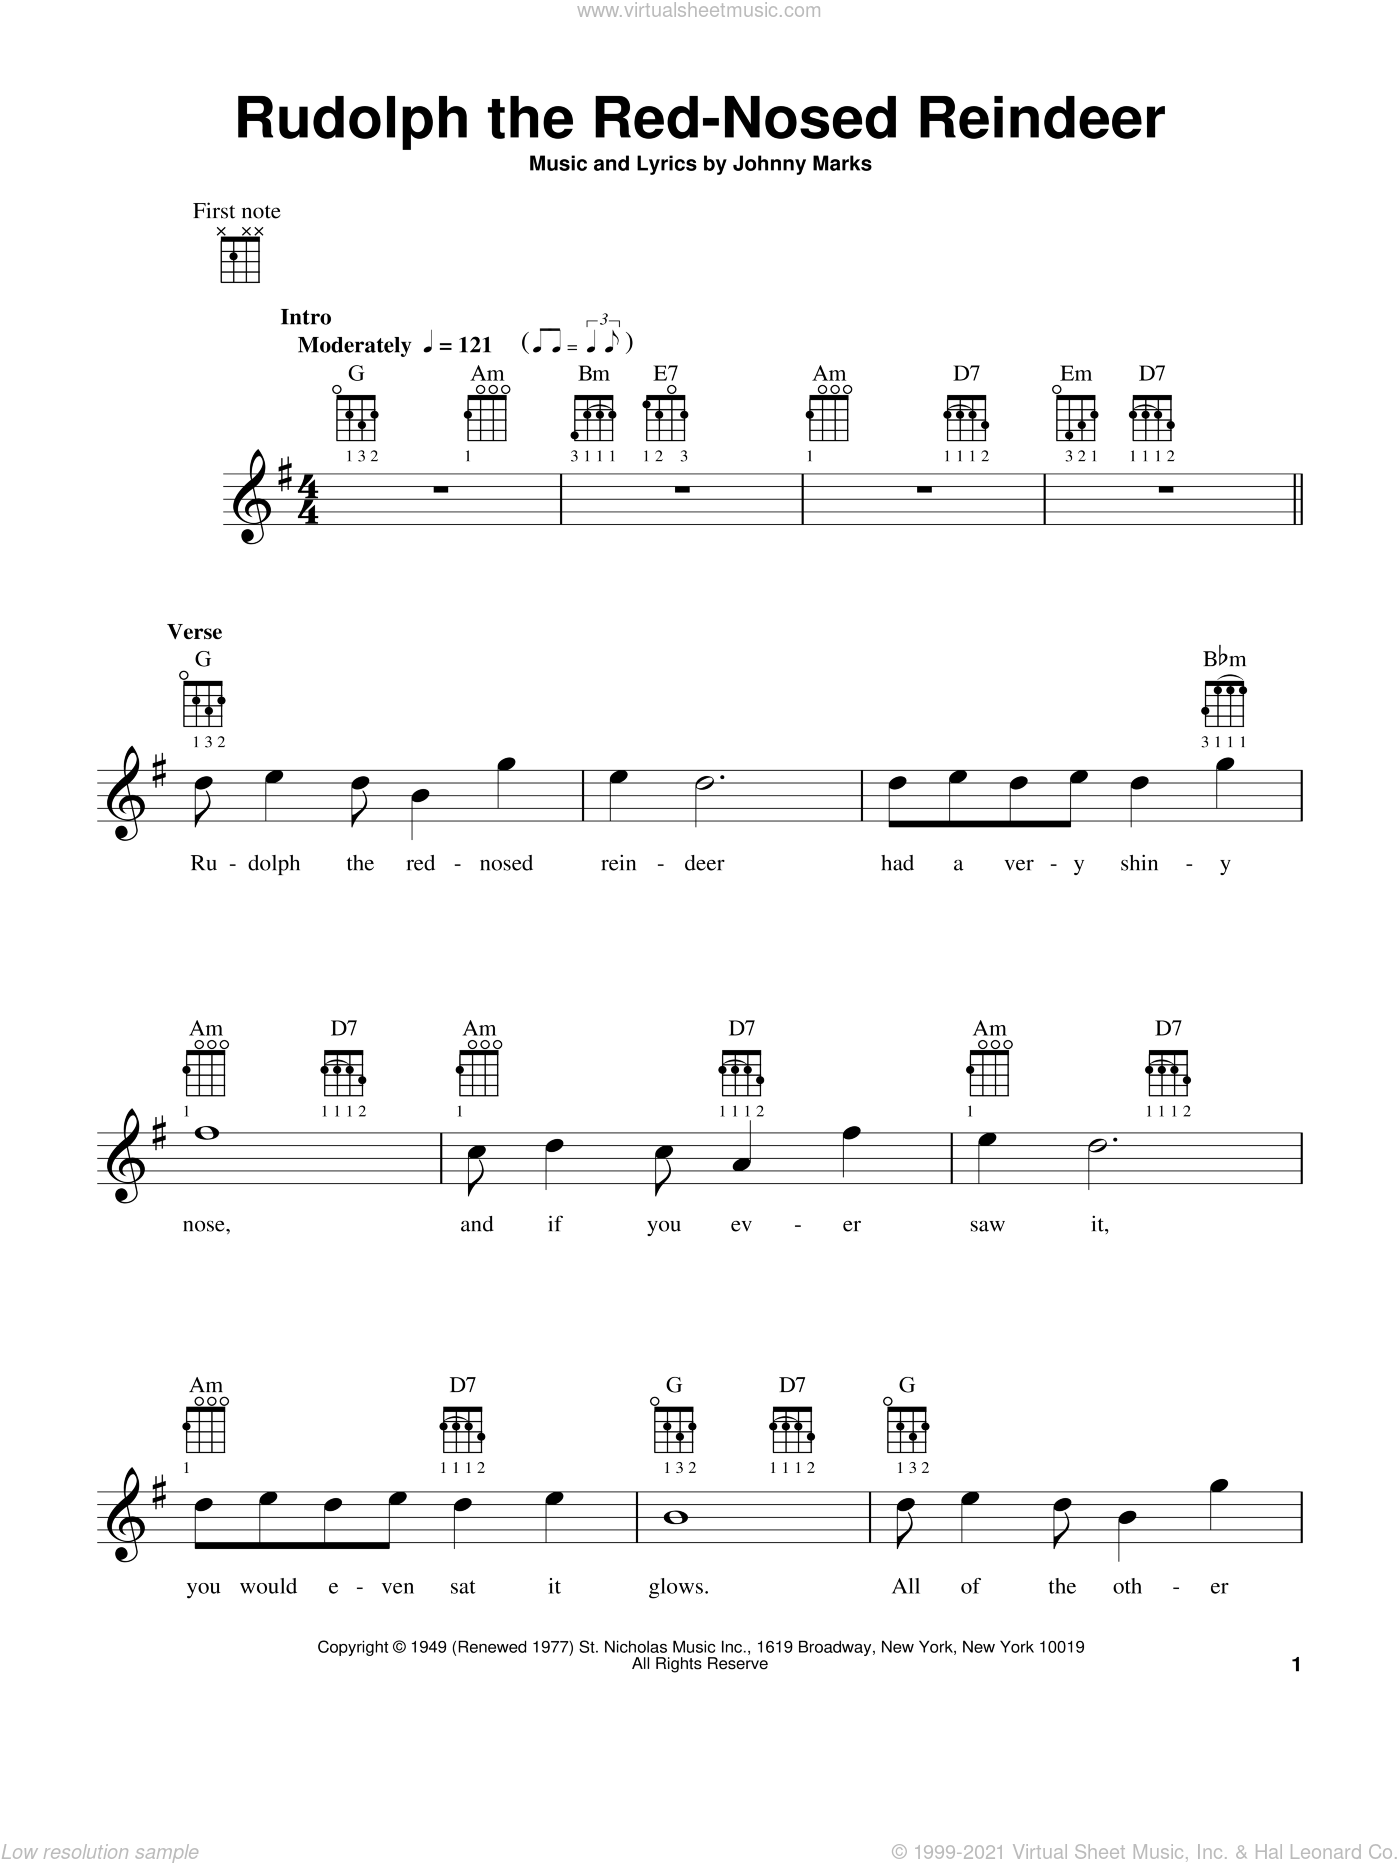 Rudolph The Red-Nosed Reindeer sheet music for ukulele by Johnny Marks, intermediate skill level